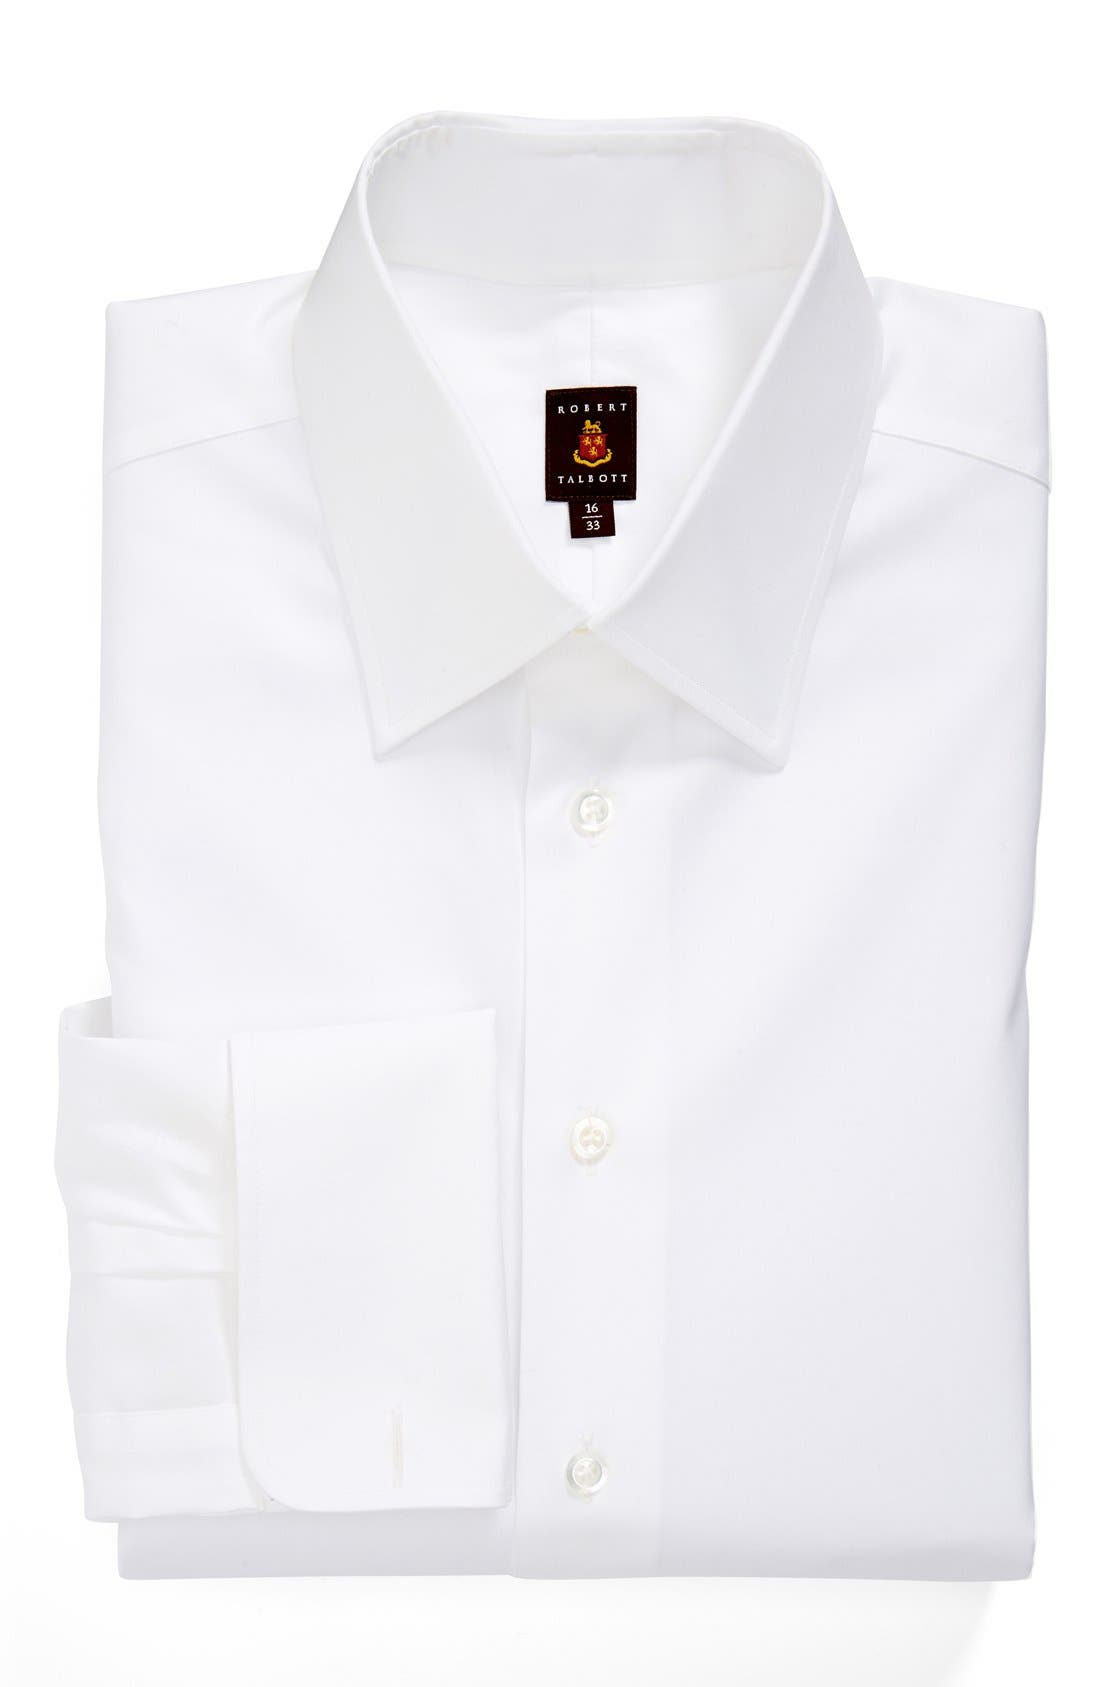 Main Image - Robert Talbott Classic Fit Solid Dress Shirt